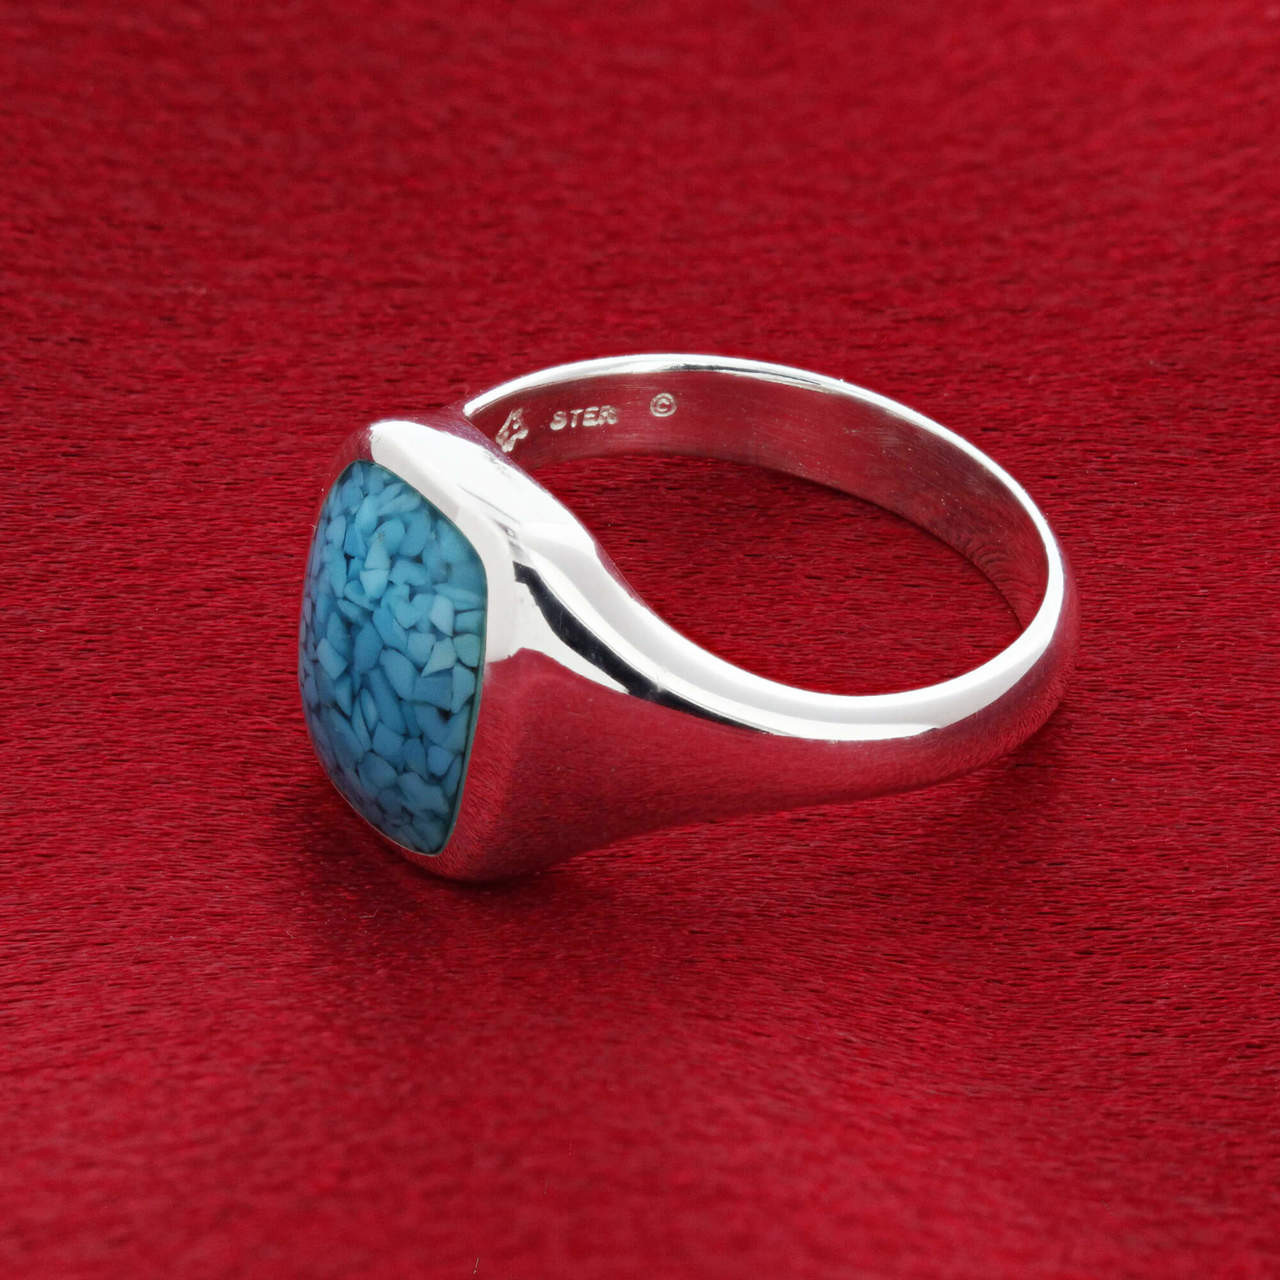 Men's Blue Turquoise Band Ring